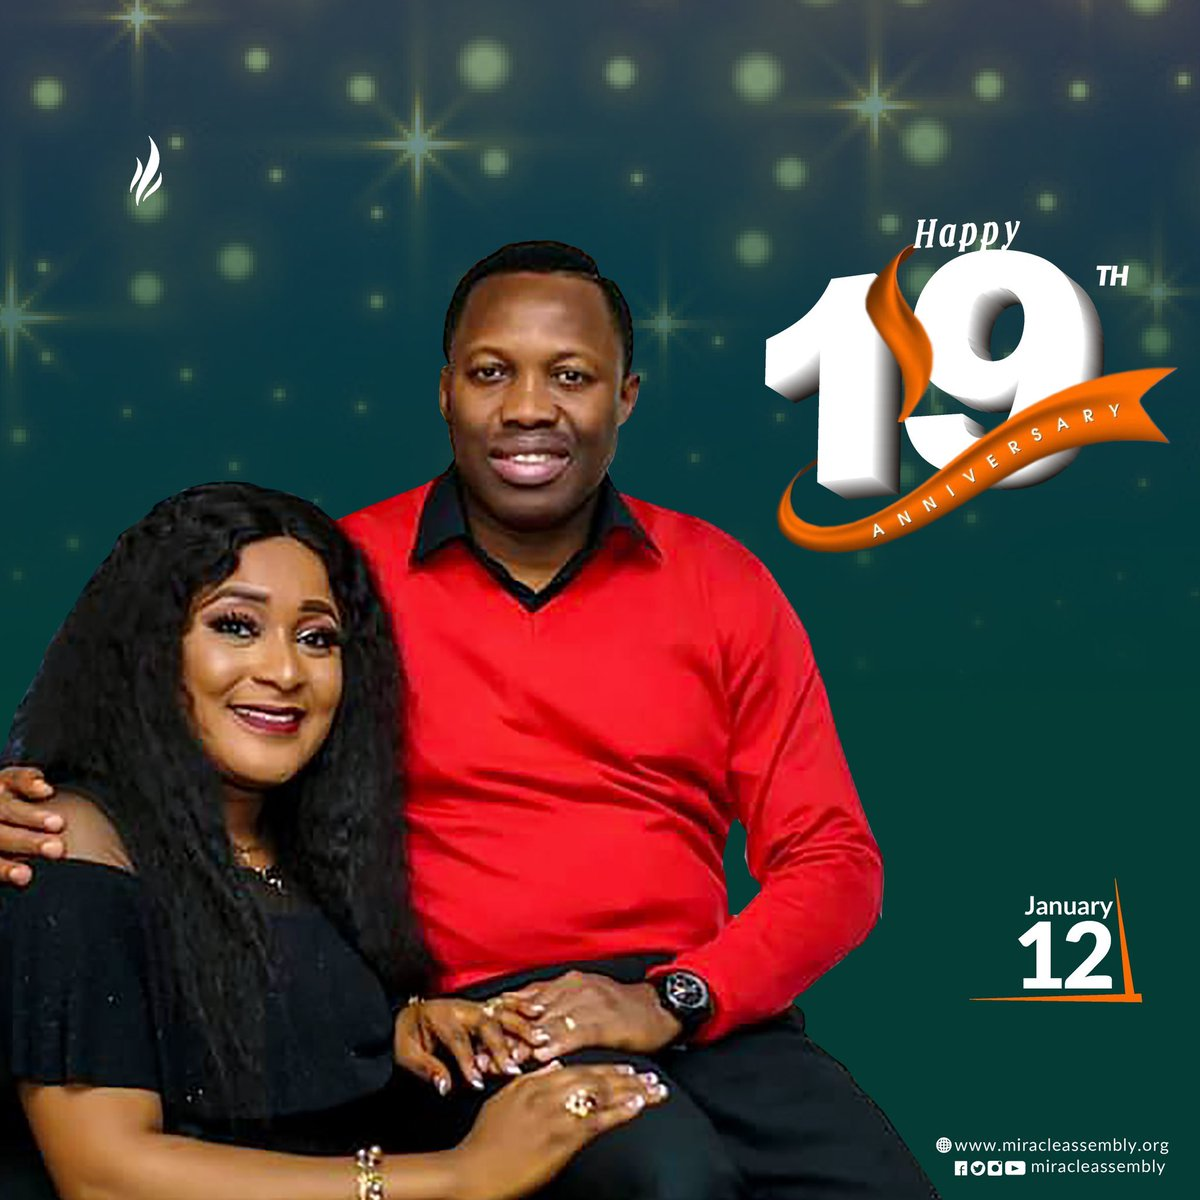 Happy 19th Wedding Anniversary to Our Parents!  Thank You for giving us an example of what a Blissful Marriage looks like.  #miracleassembly #qualityliving #elevation #weddinganniversary #happymarriedlife #celebration #blissful #spiritualparents #love